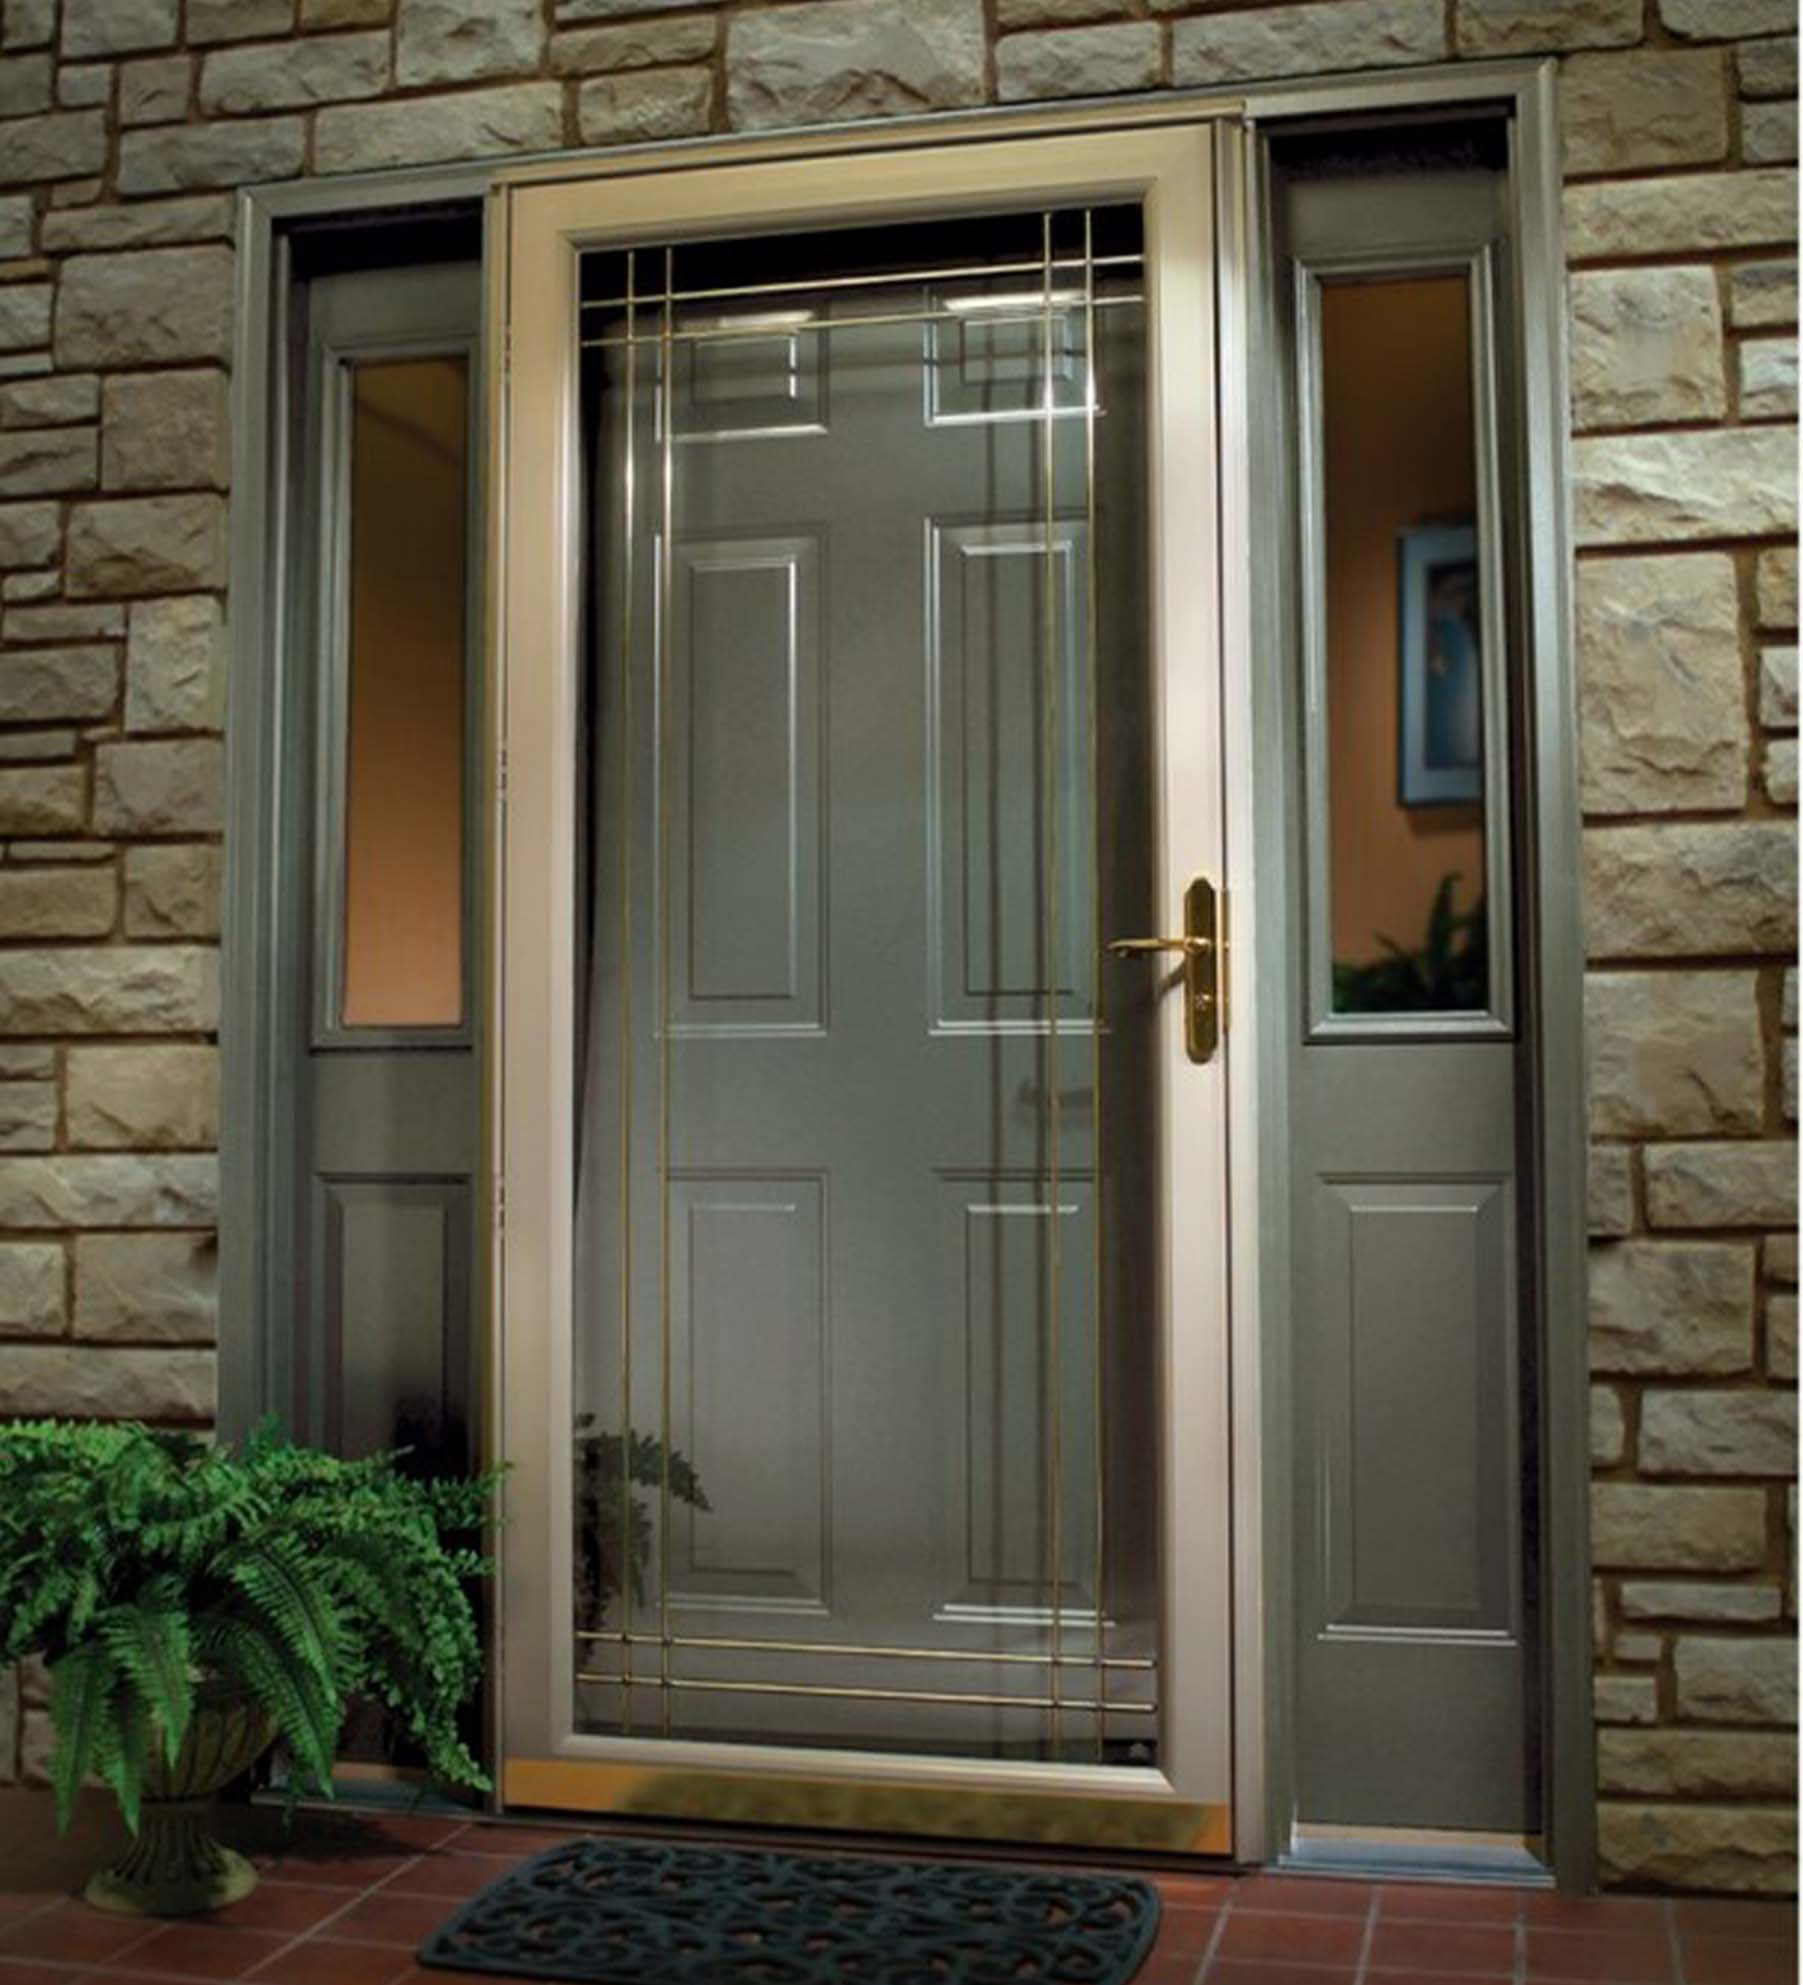 INSTALLED Larson Full View Glass Design Storm Door w/ Hardware STARTING      $598.99